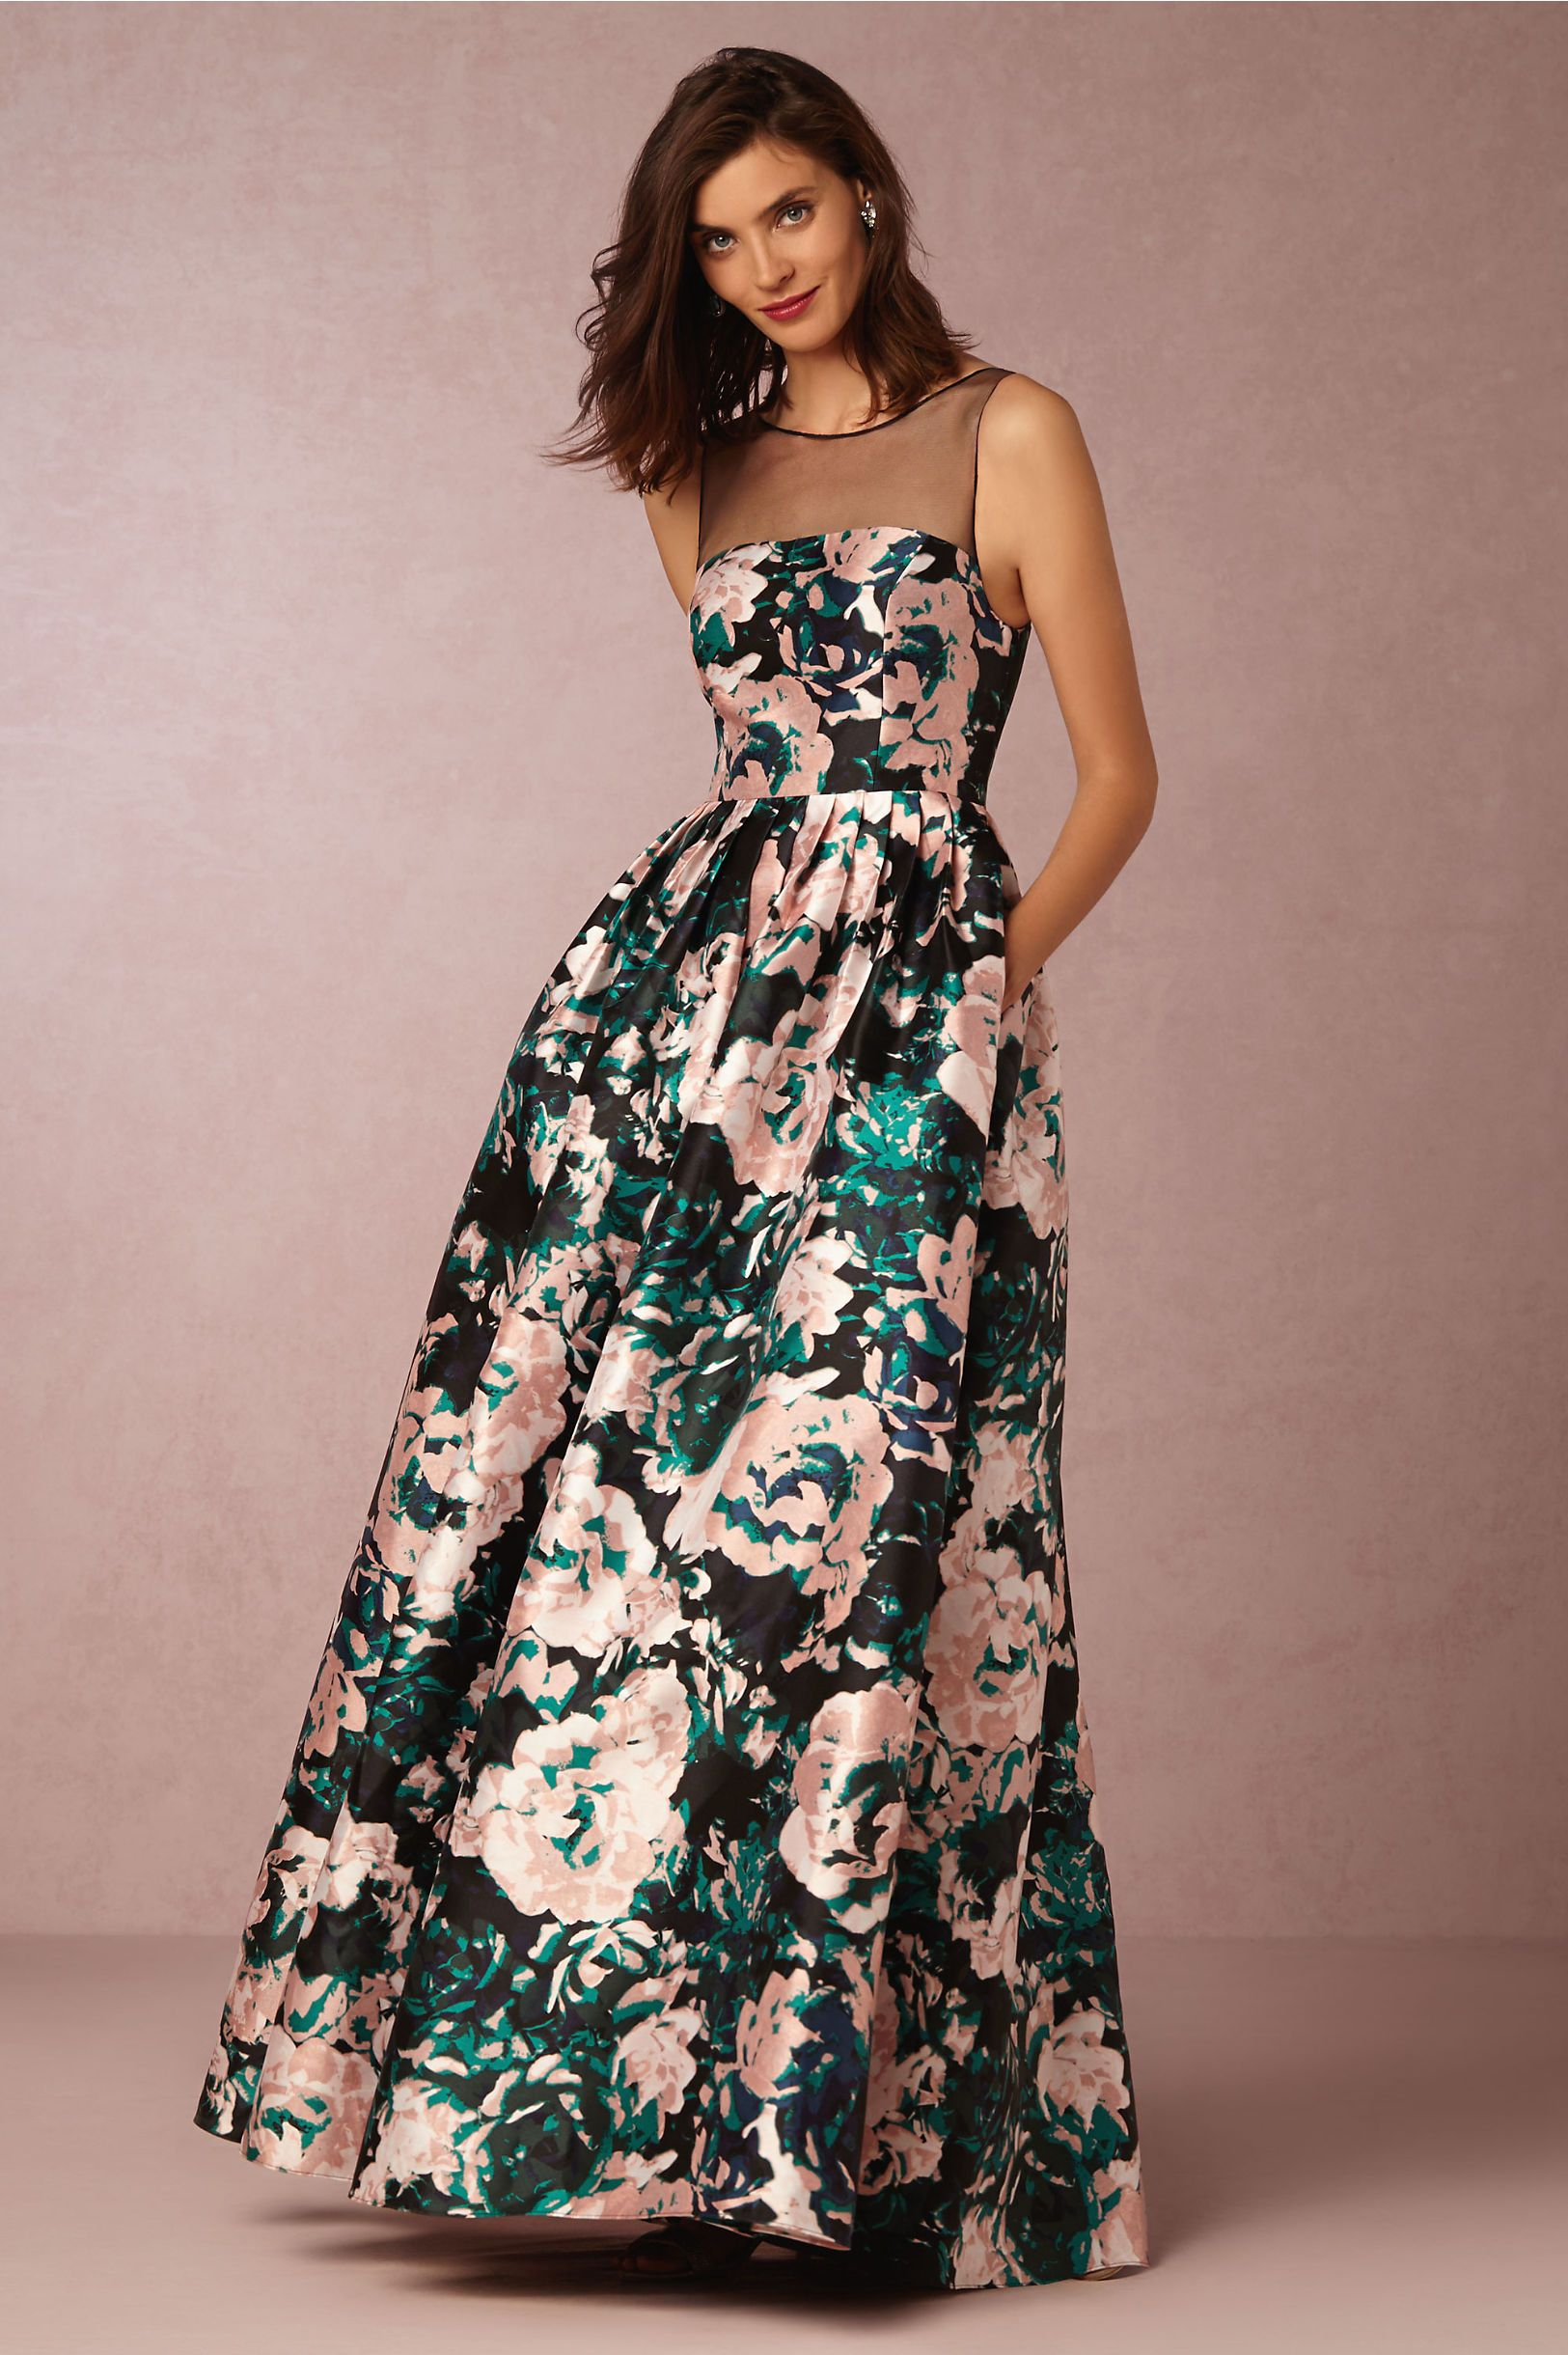 Floral black tie dress cora ball gown from bhldn for Black floral dress to a wedding